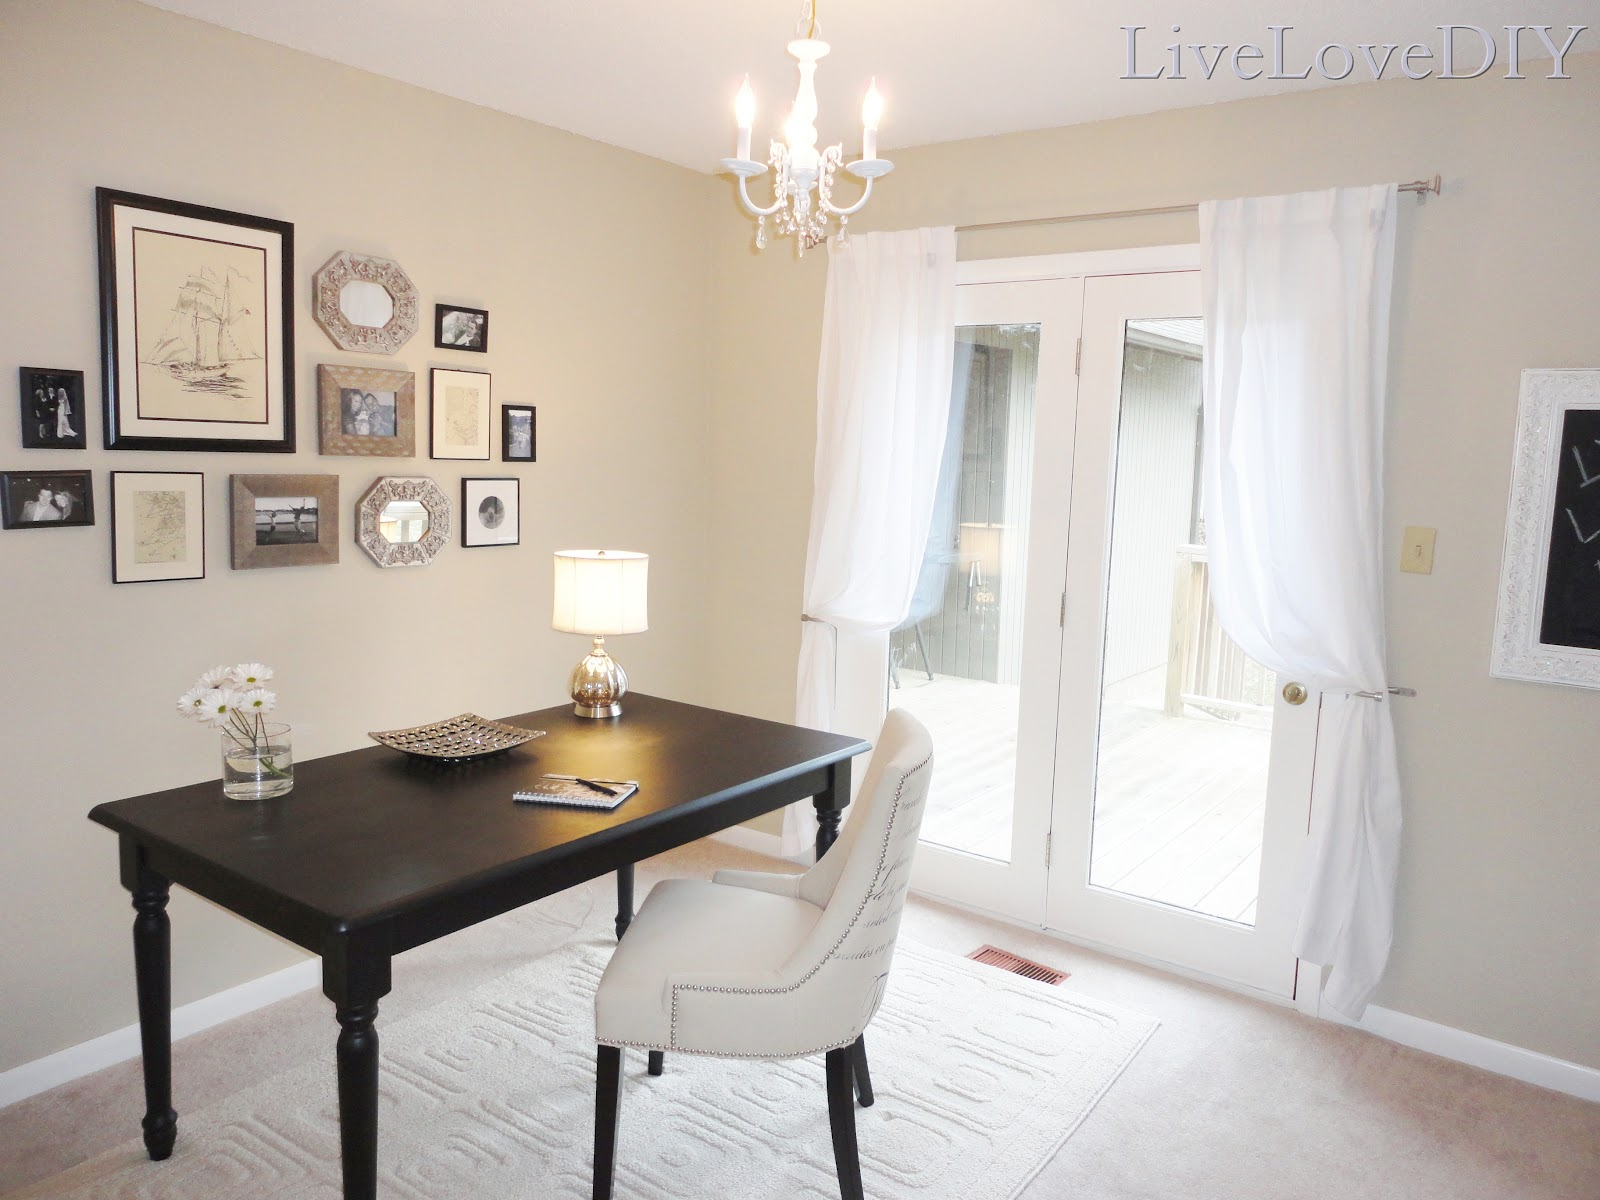 LiveLoveDIY Painting Trim & Walls What You Need To Know